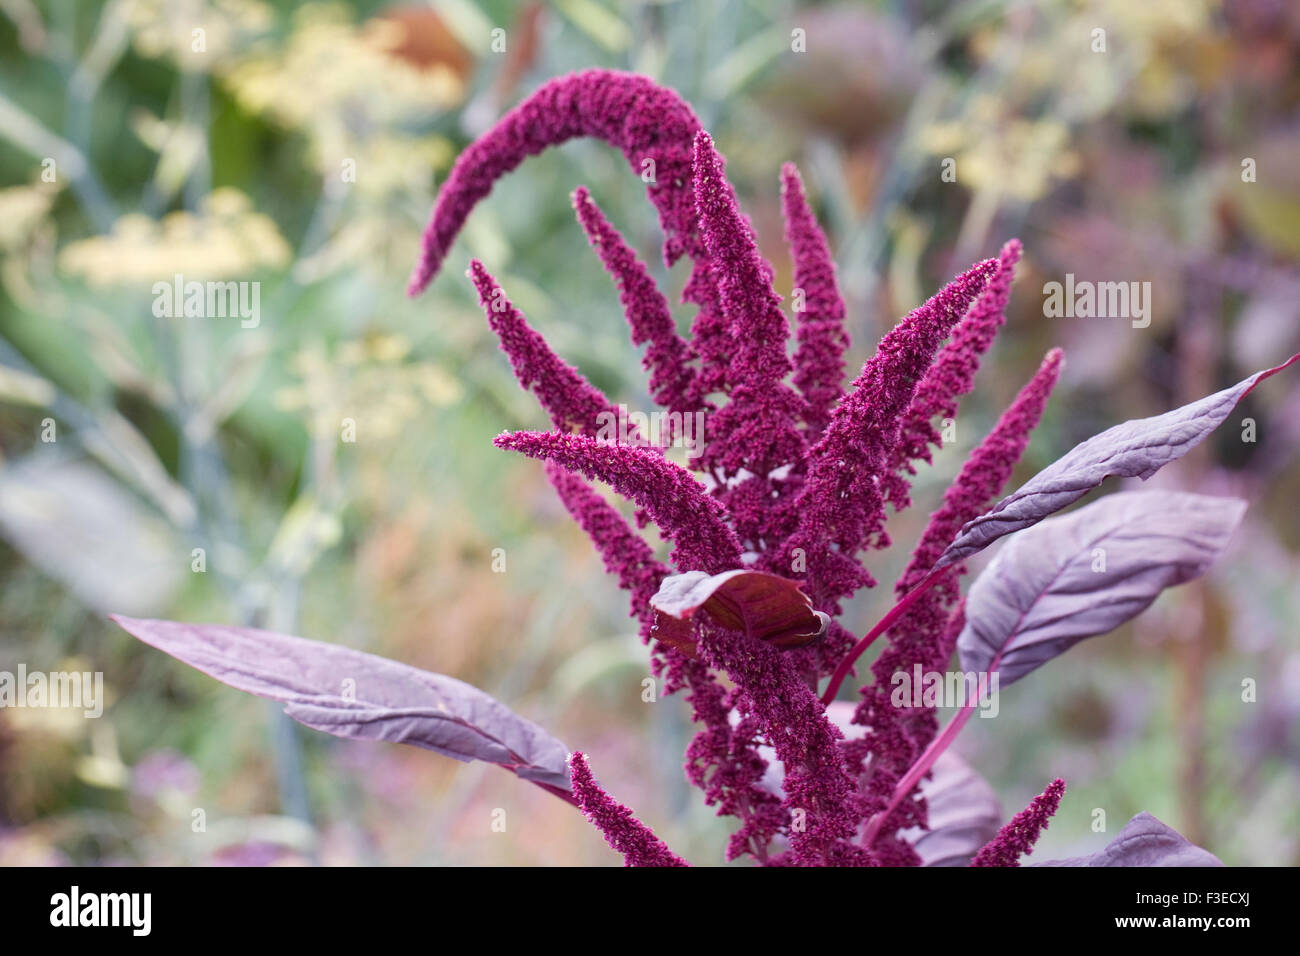 Amaranthus tricolor 'Red Army' flowers. - Stock Image